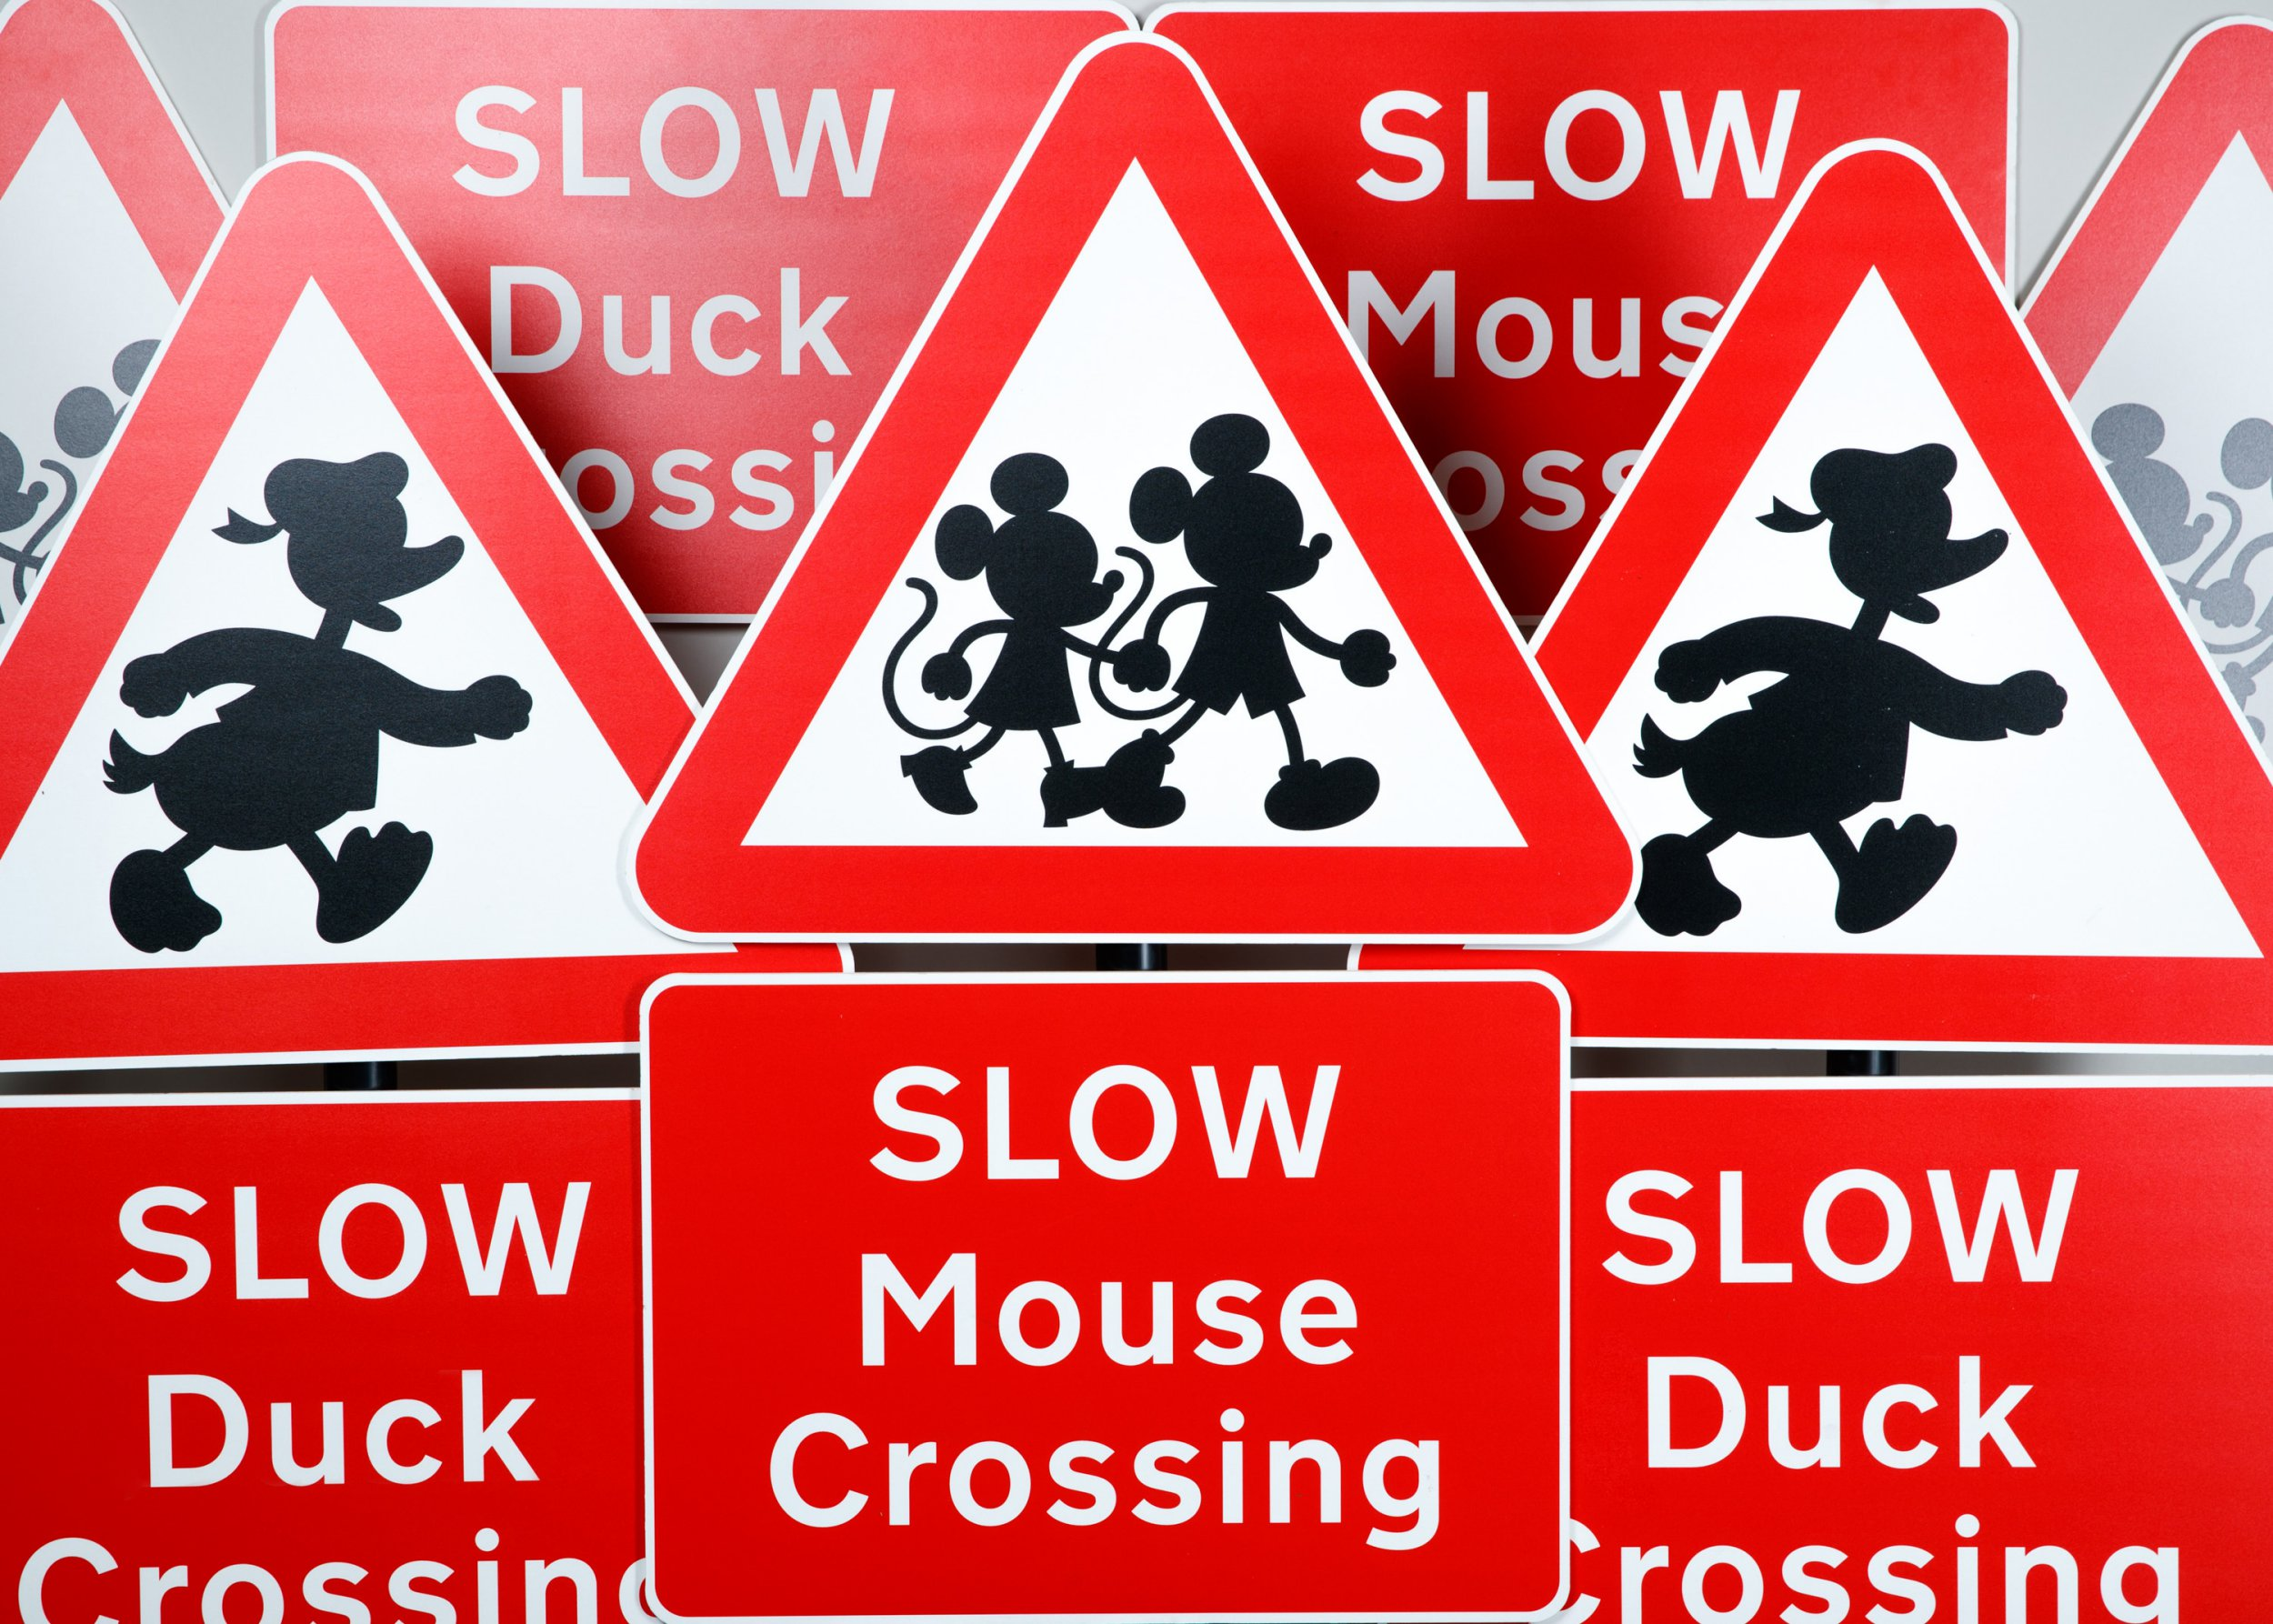 Mickey Mouse and Donald Duck added to road signs to encourage kids to be roadsafe